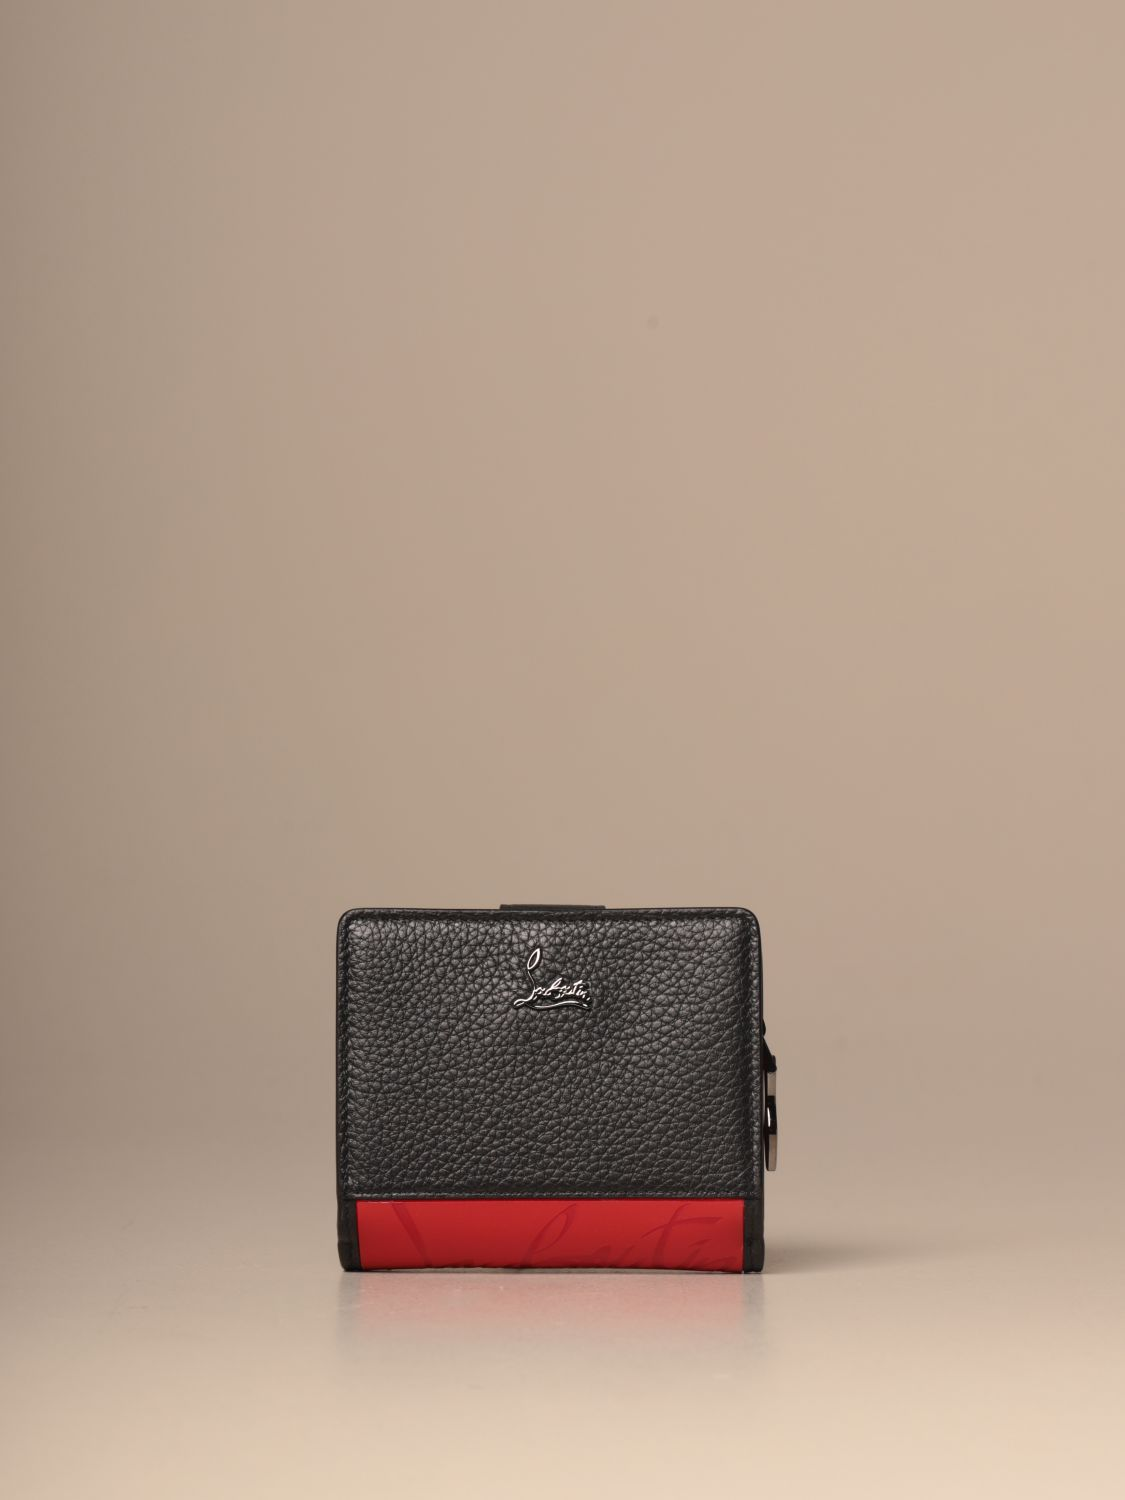 Wallet Christian Louboutin: Wallet women Christian Louboutin black 3